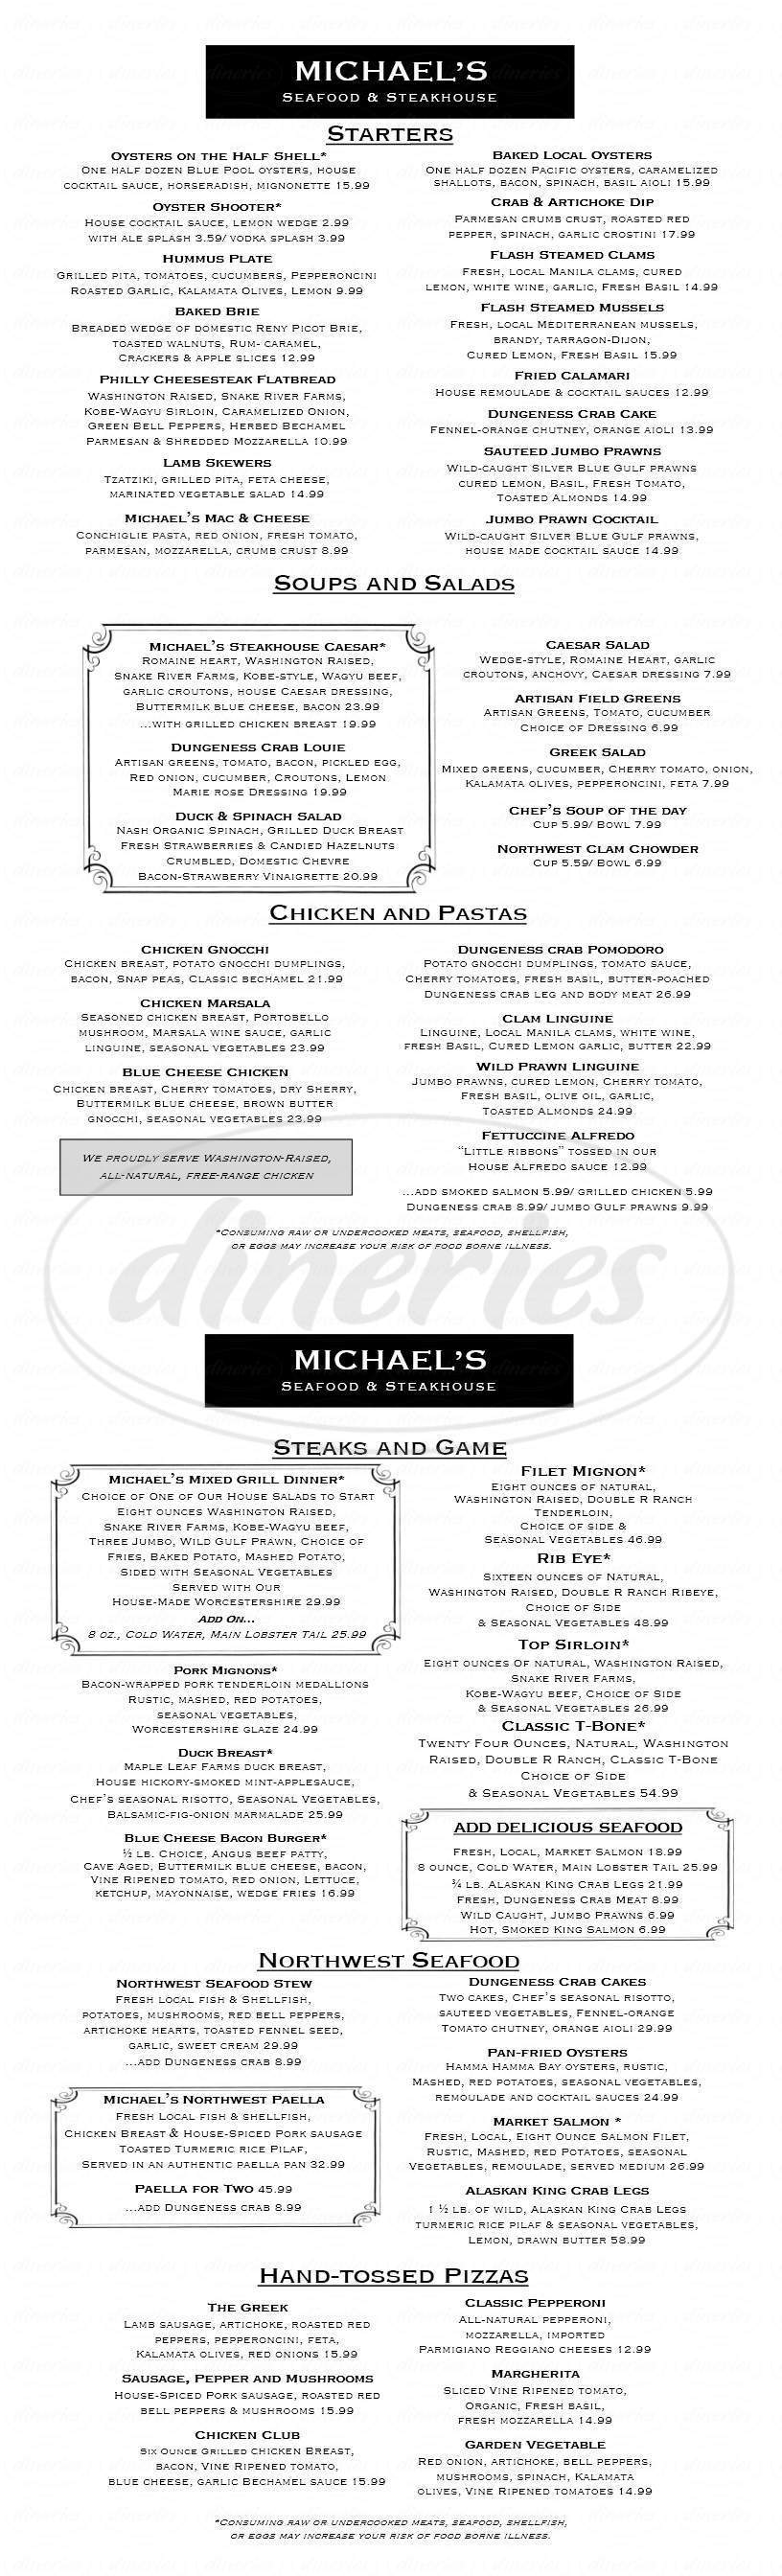 menu for Michael's Seafood & Steakhouse